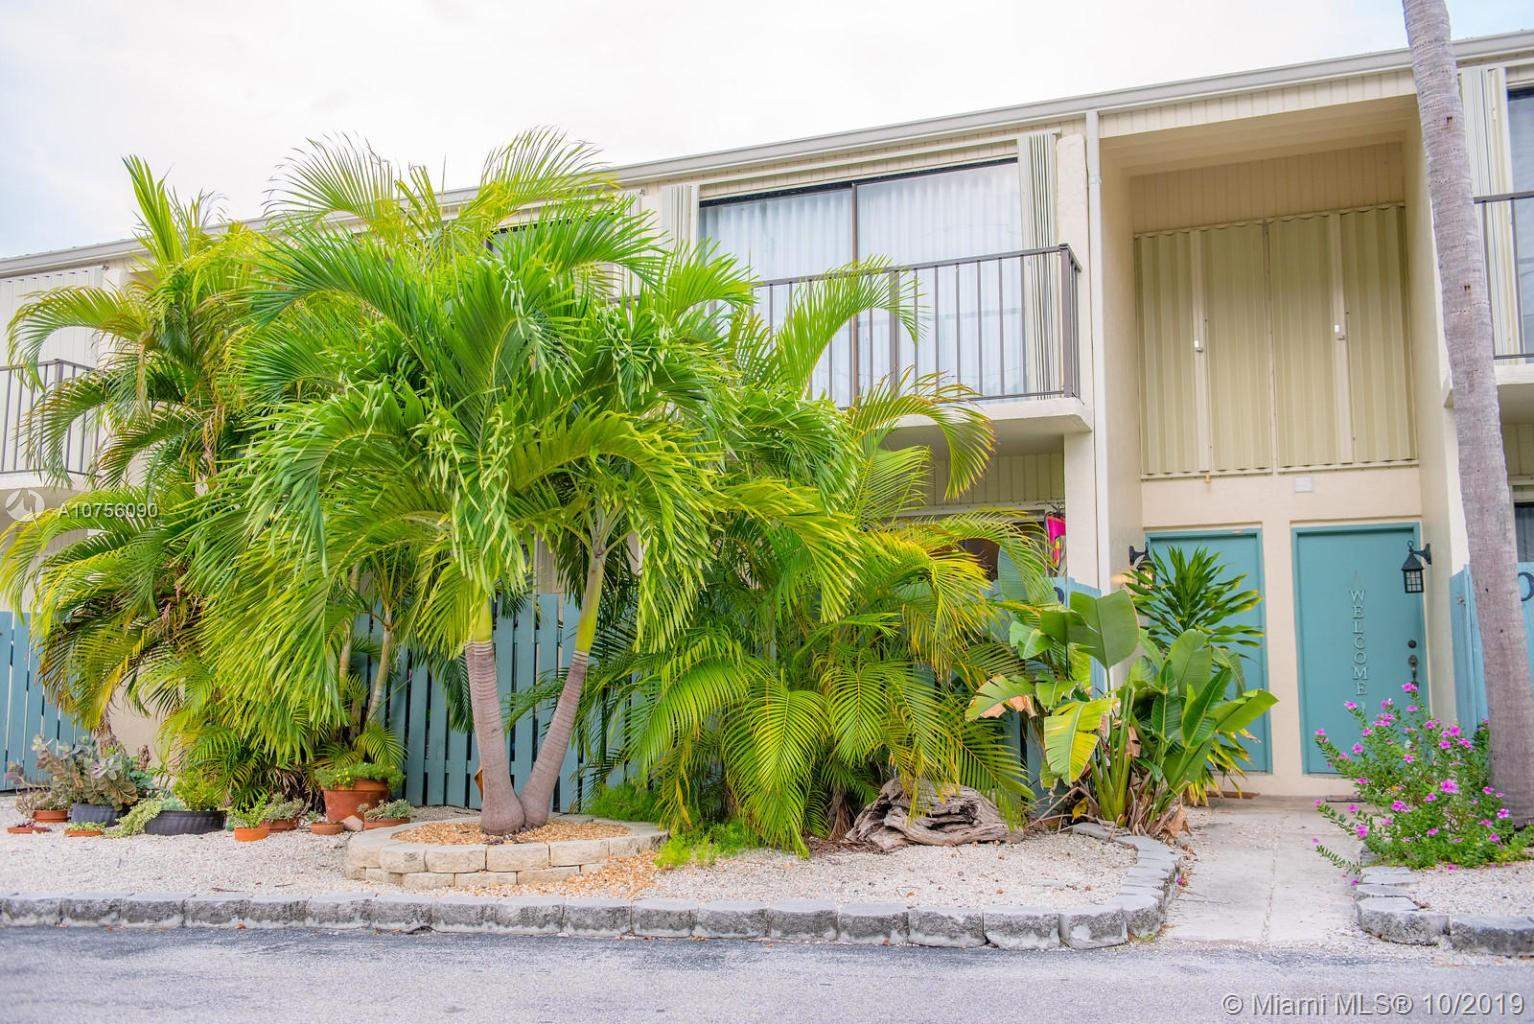 87200 Overseas Hwy #S-9, Other City - Keys/Islands/Caribb, FL 33036 - Other City - Keys/Islands/Caribb, FL real estate listing